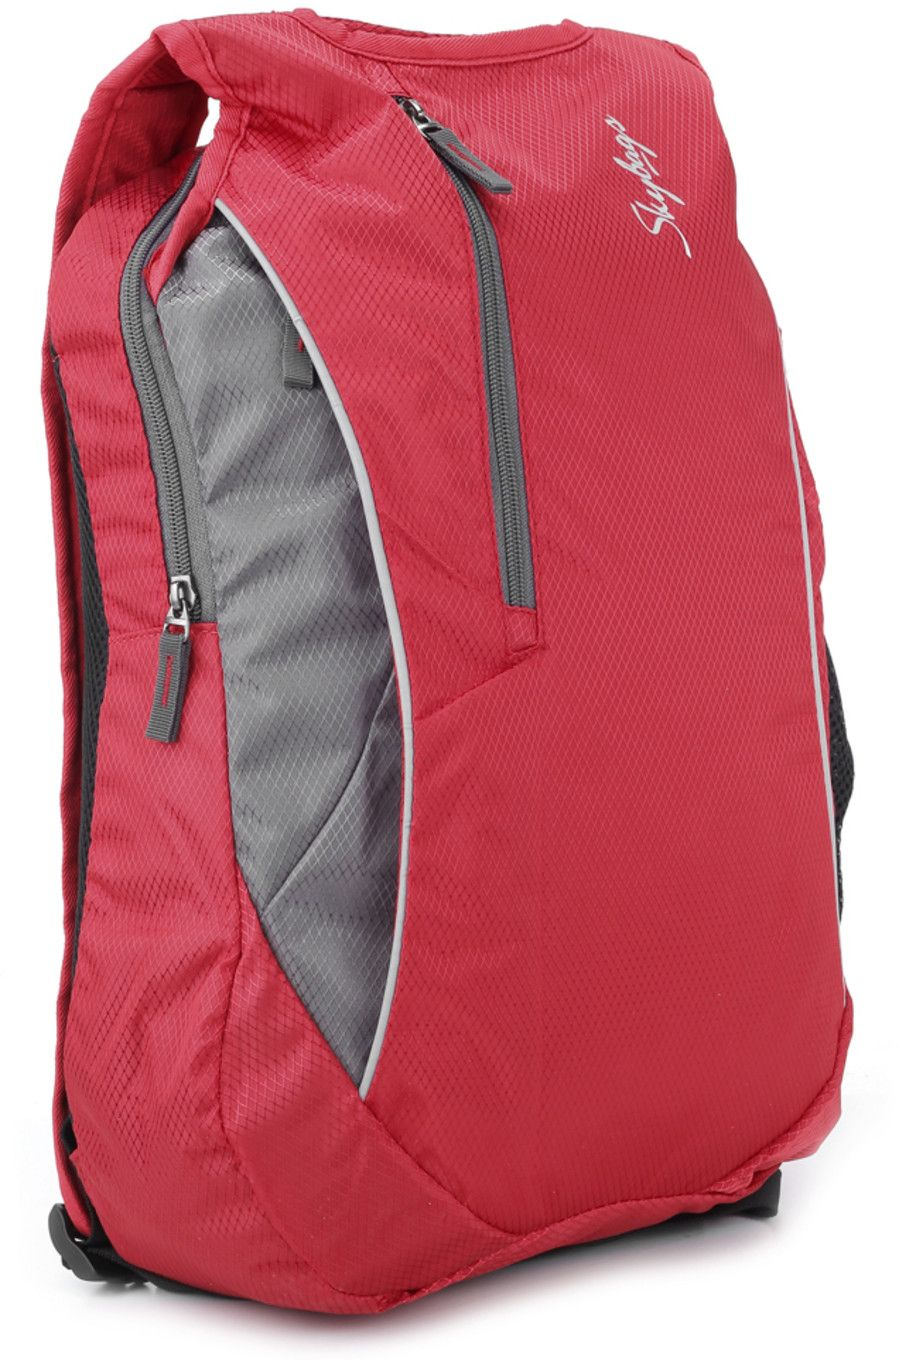 ceee749184  Skybags Surf 03  Backpack (Red) Buy Now Rs. 1